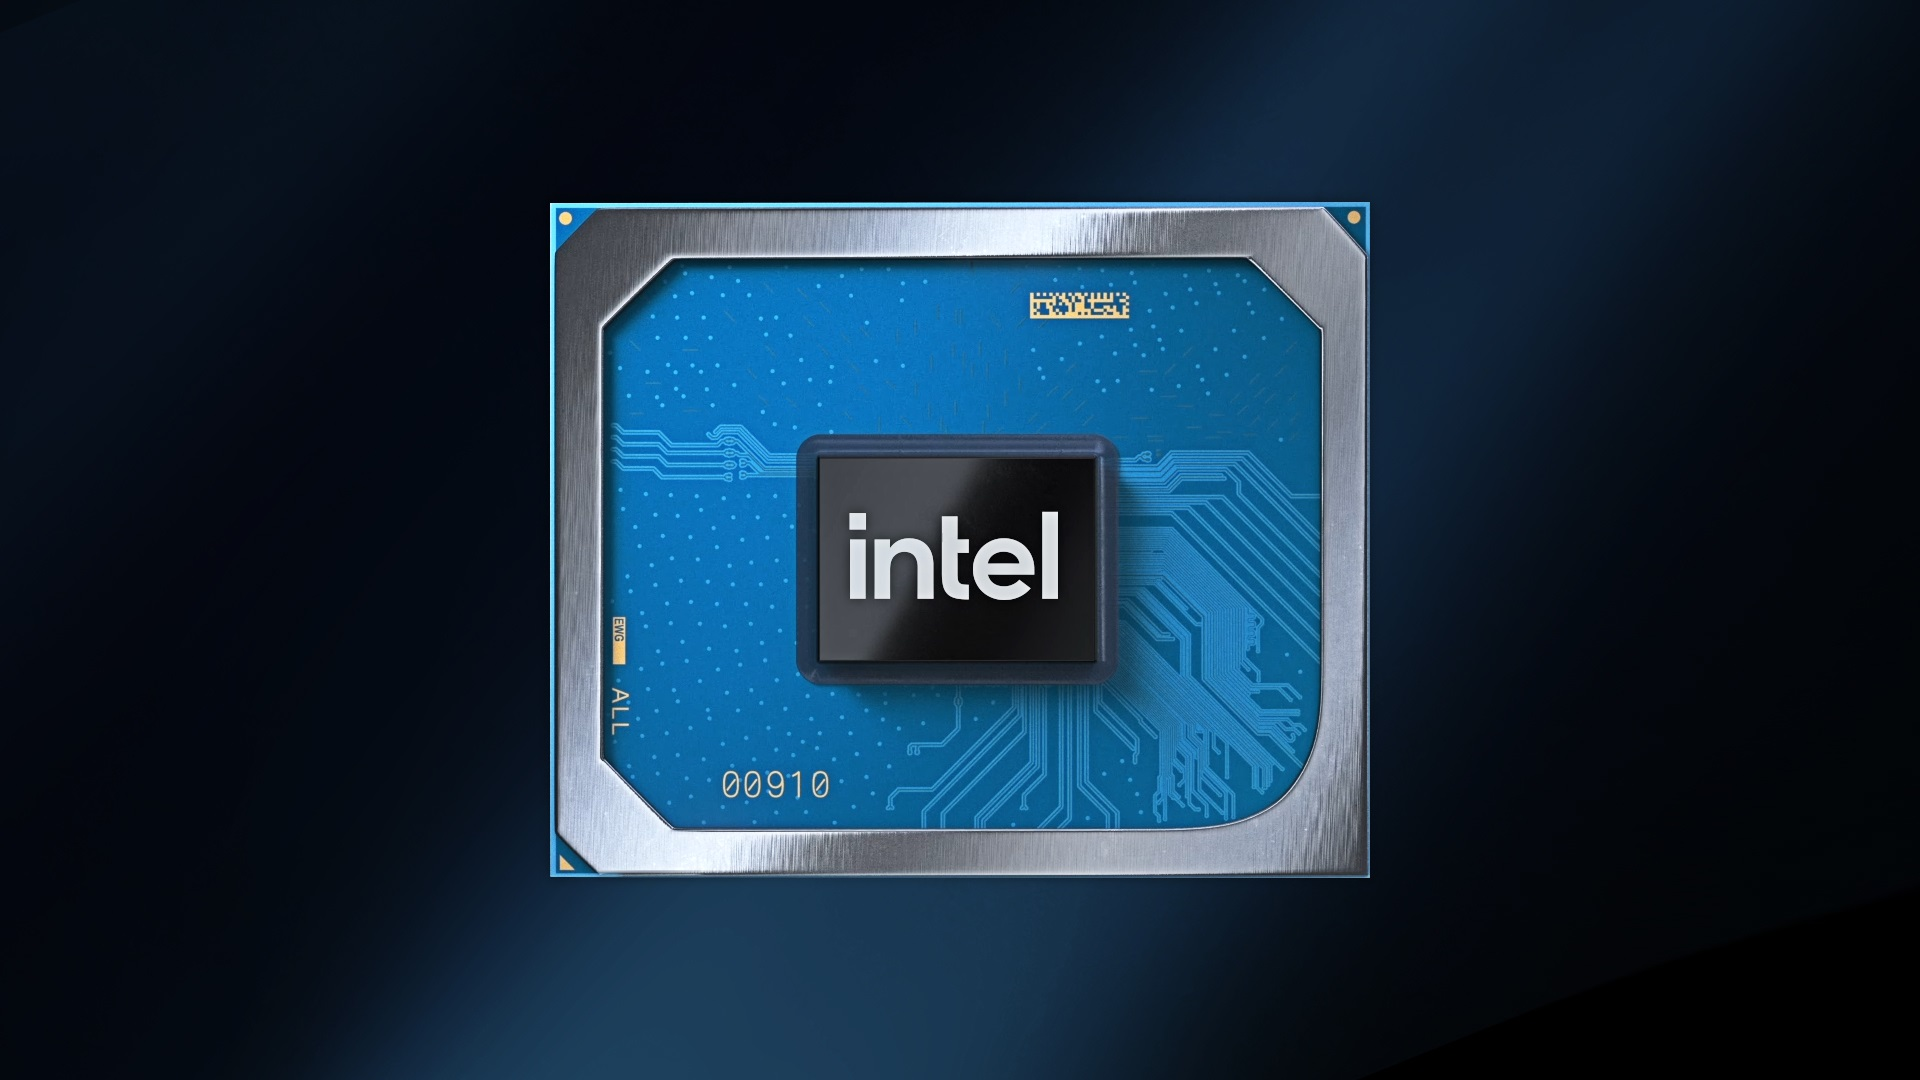 Intel Xe-HPG DG2 GPU Powered Laptop & Desktop Gaming Graphics Cards Specifications Leak Out, Up To 4096 Cores at 1.8 GHz & 100W TGP